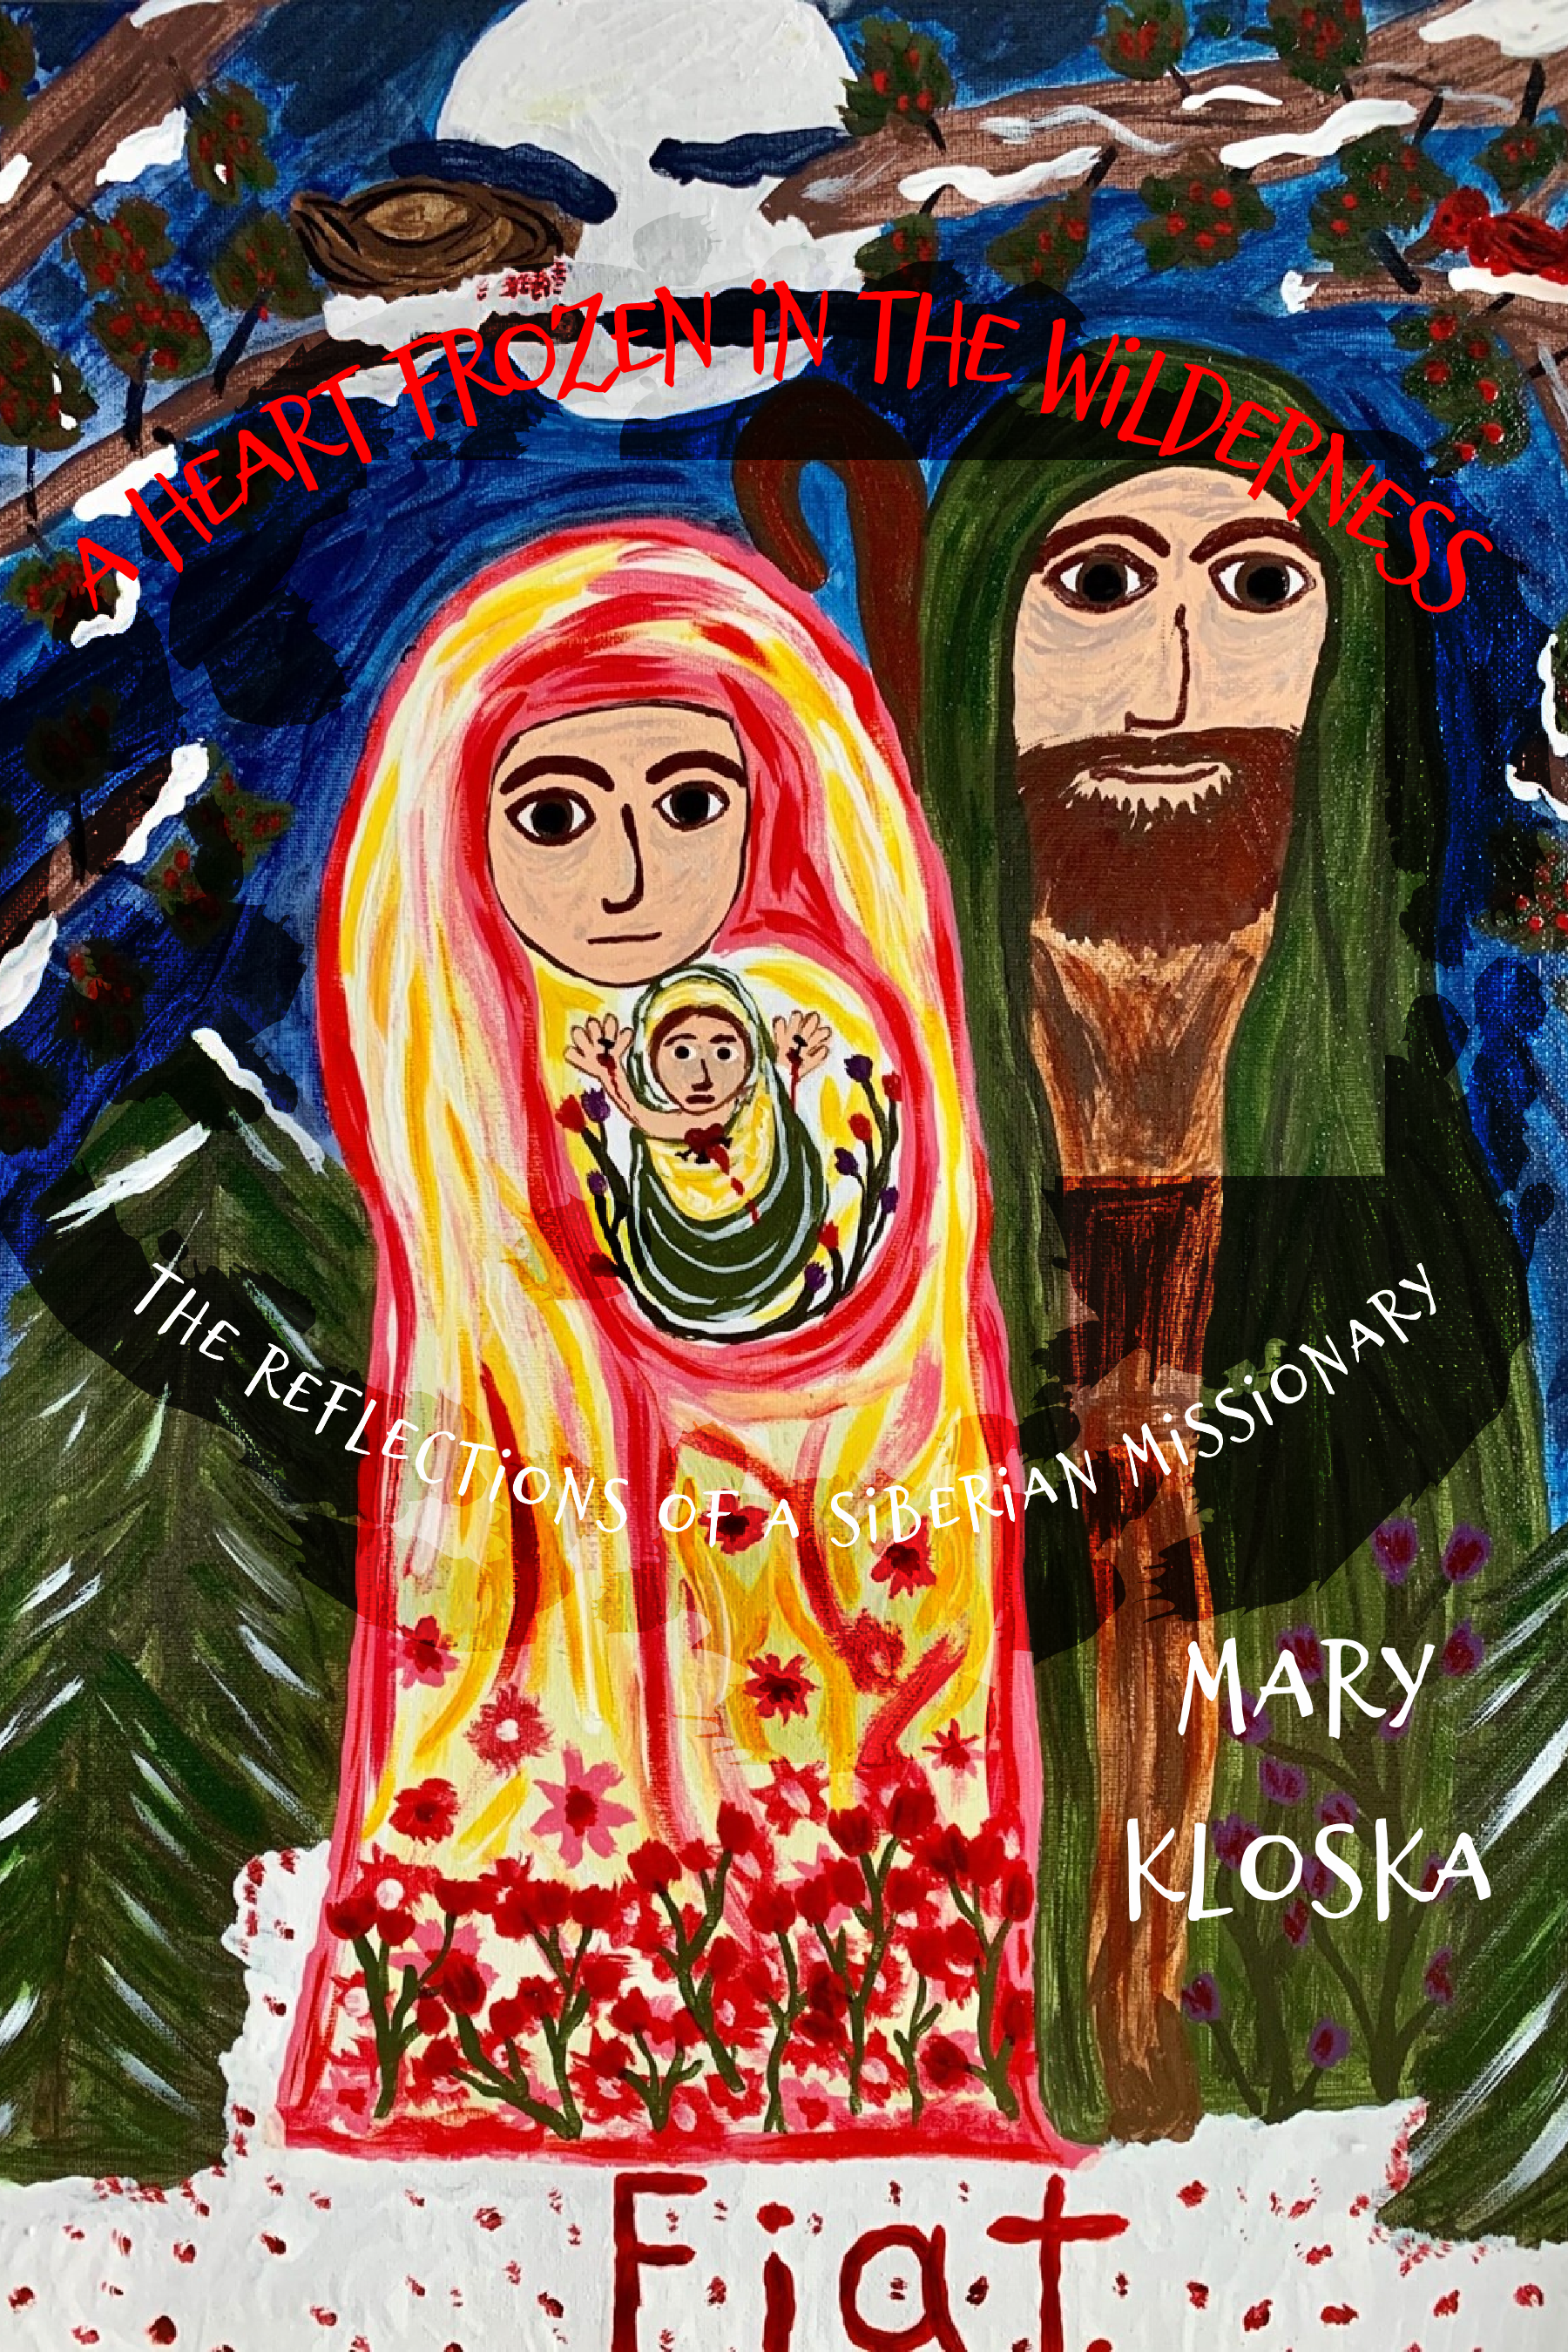 A Heart Frozen in the Wilderness: The Reflections of a Siberian Missionary by Mary Kloska